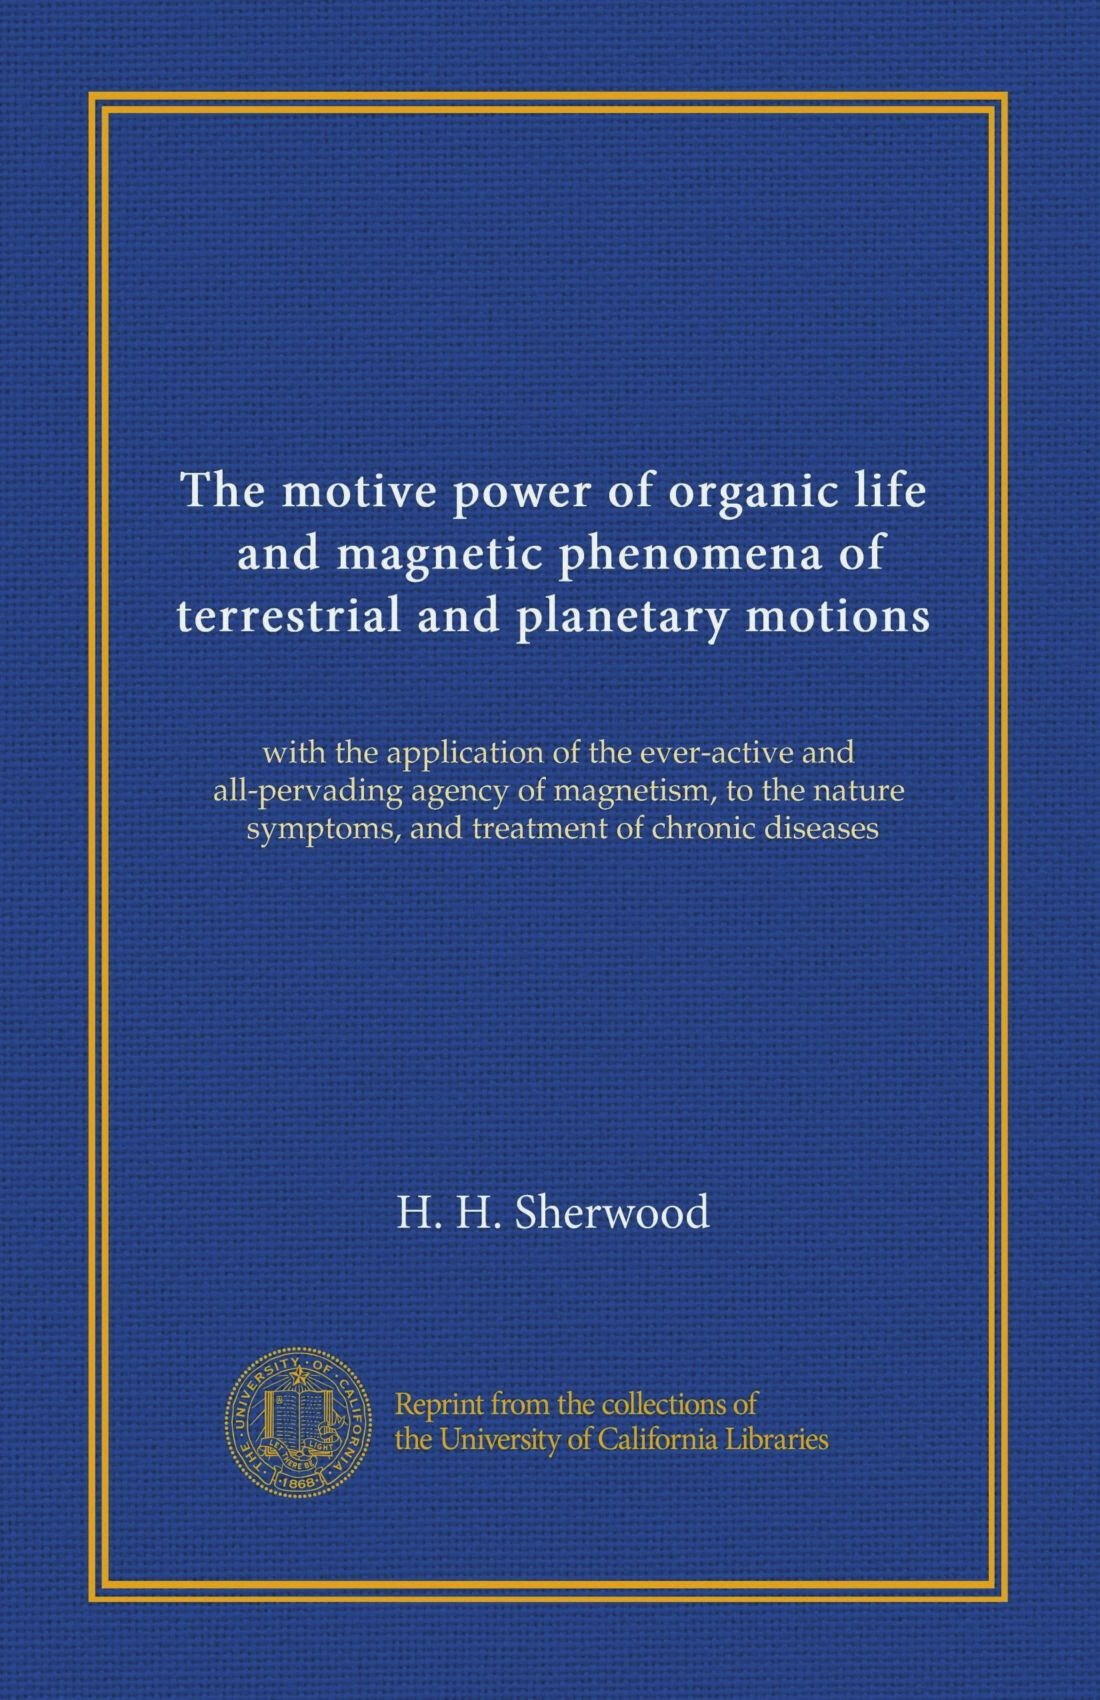 Download The motive power of organic life, and magnetic phenomena of terrestrial and planetary motions: with the application of the ever-active and ... symptoms, and treatment of chronic diseases PDF